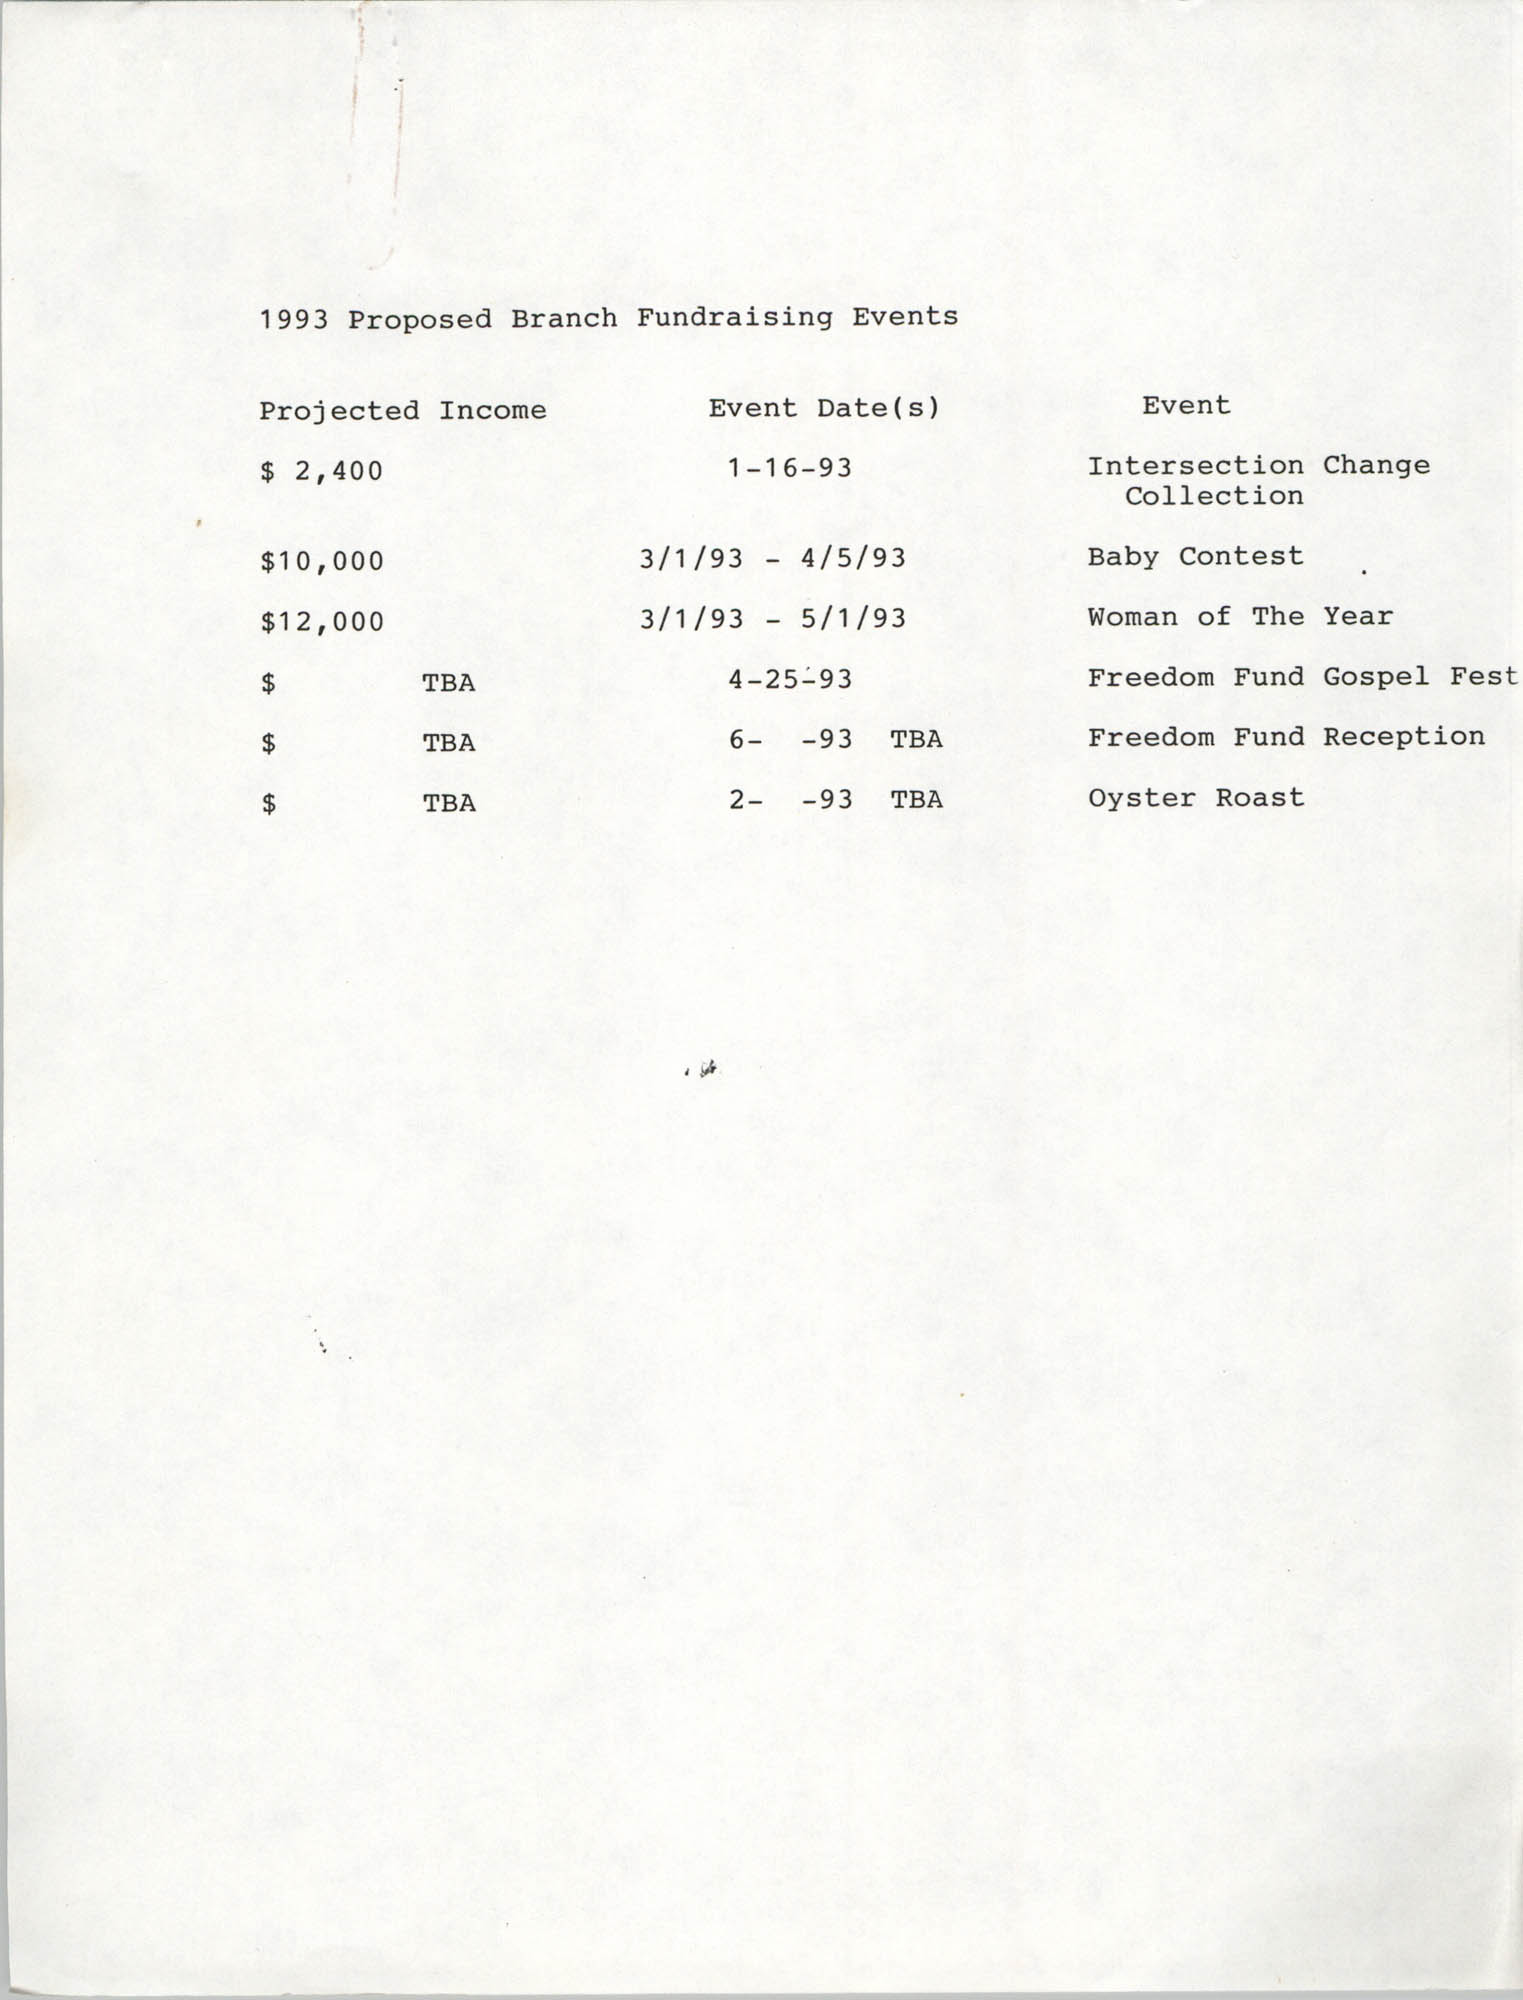 Charleston Branch of the NAACP, 1993 Proposed Branch Fundraising Events